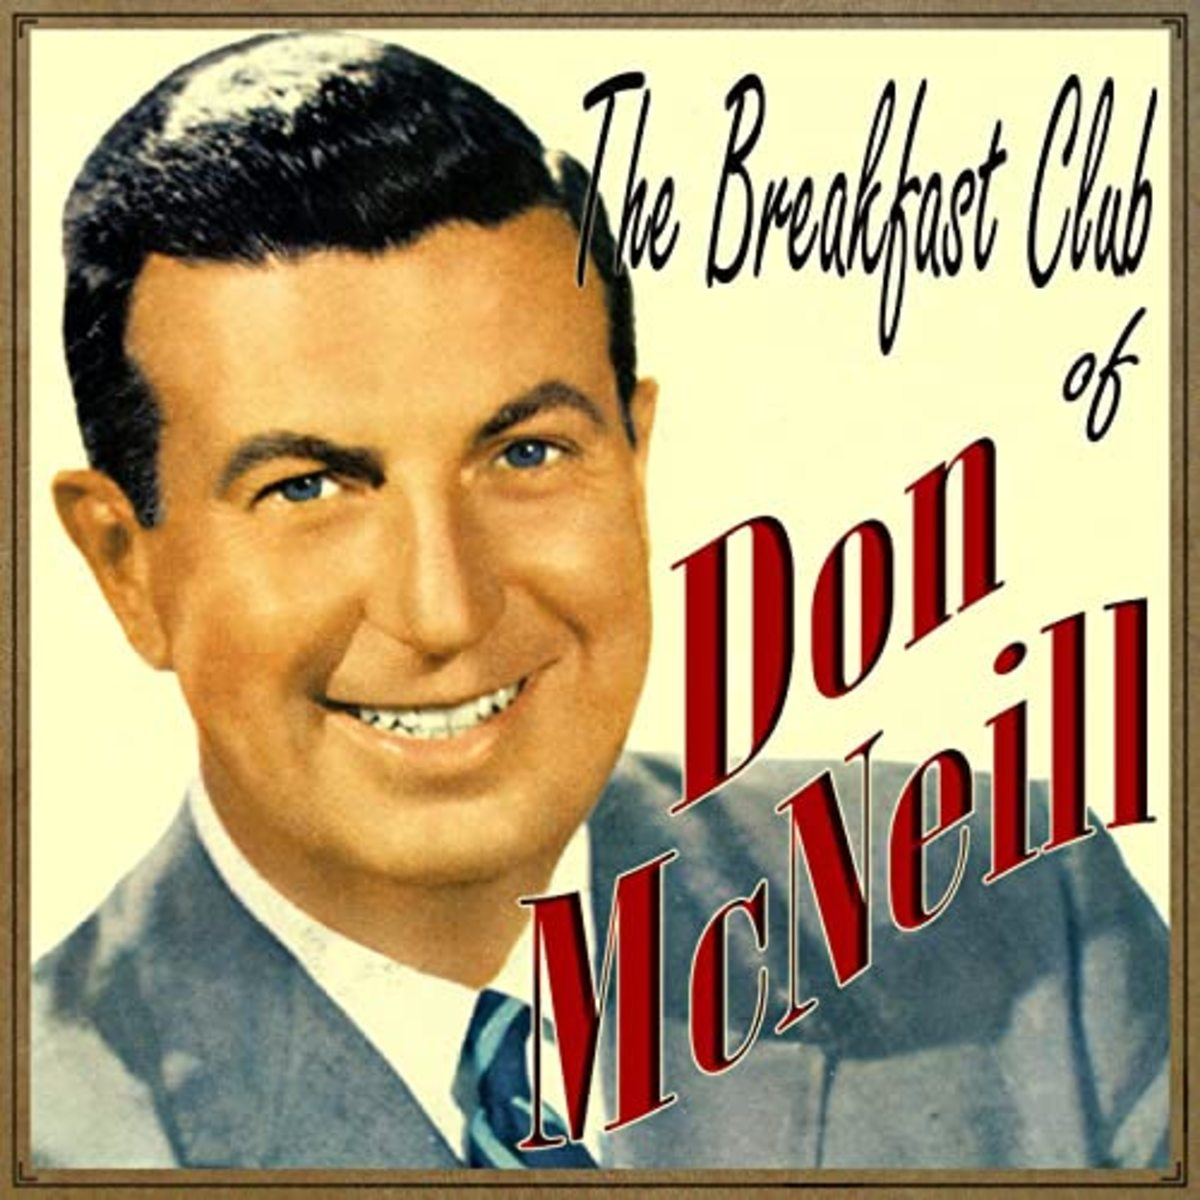 In 1965, Don McNeill's Breakfast Club was one of the most popular radio shows.